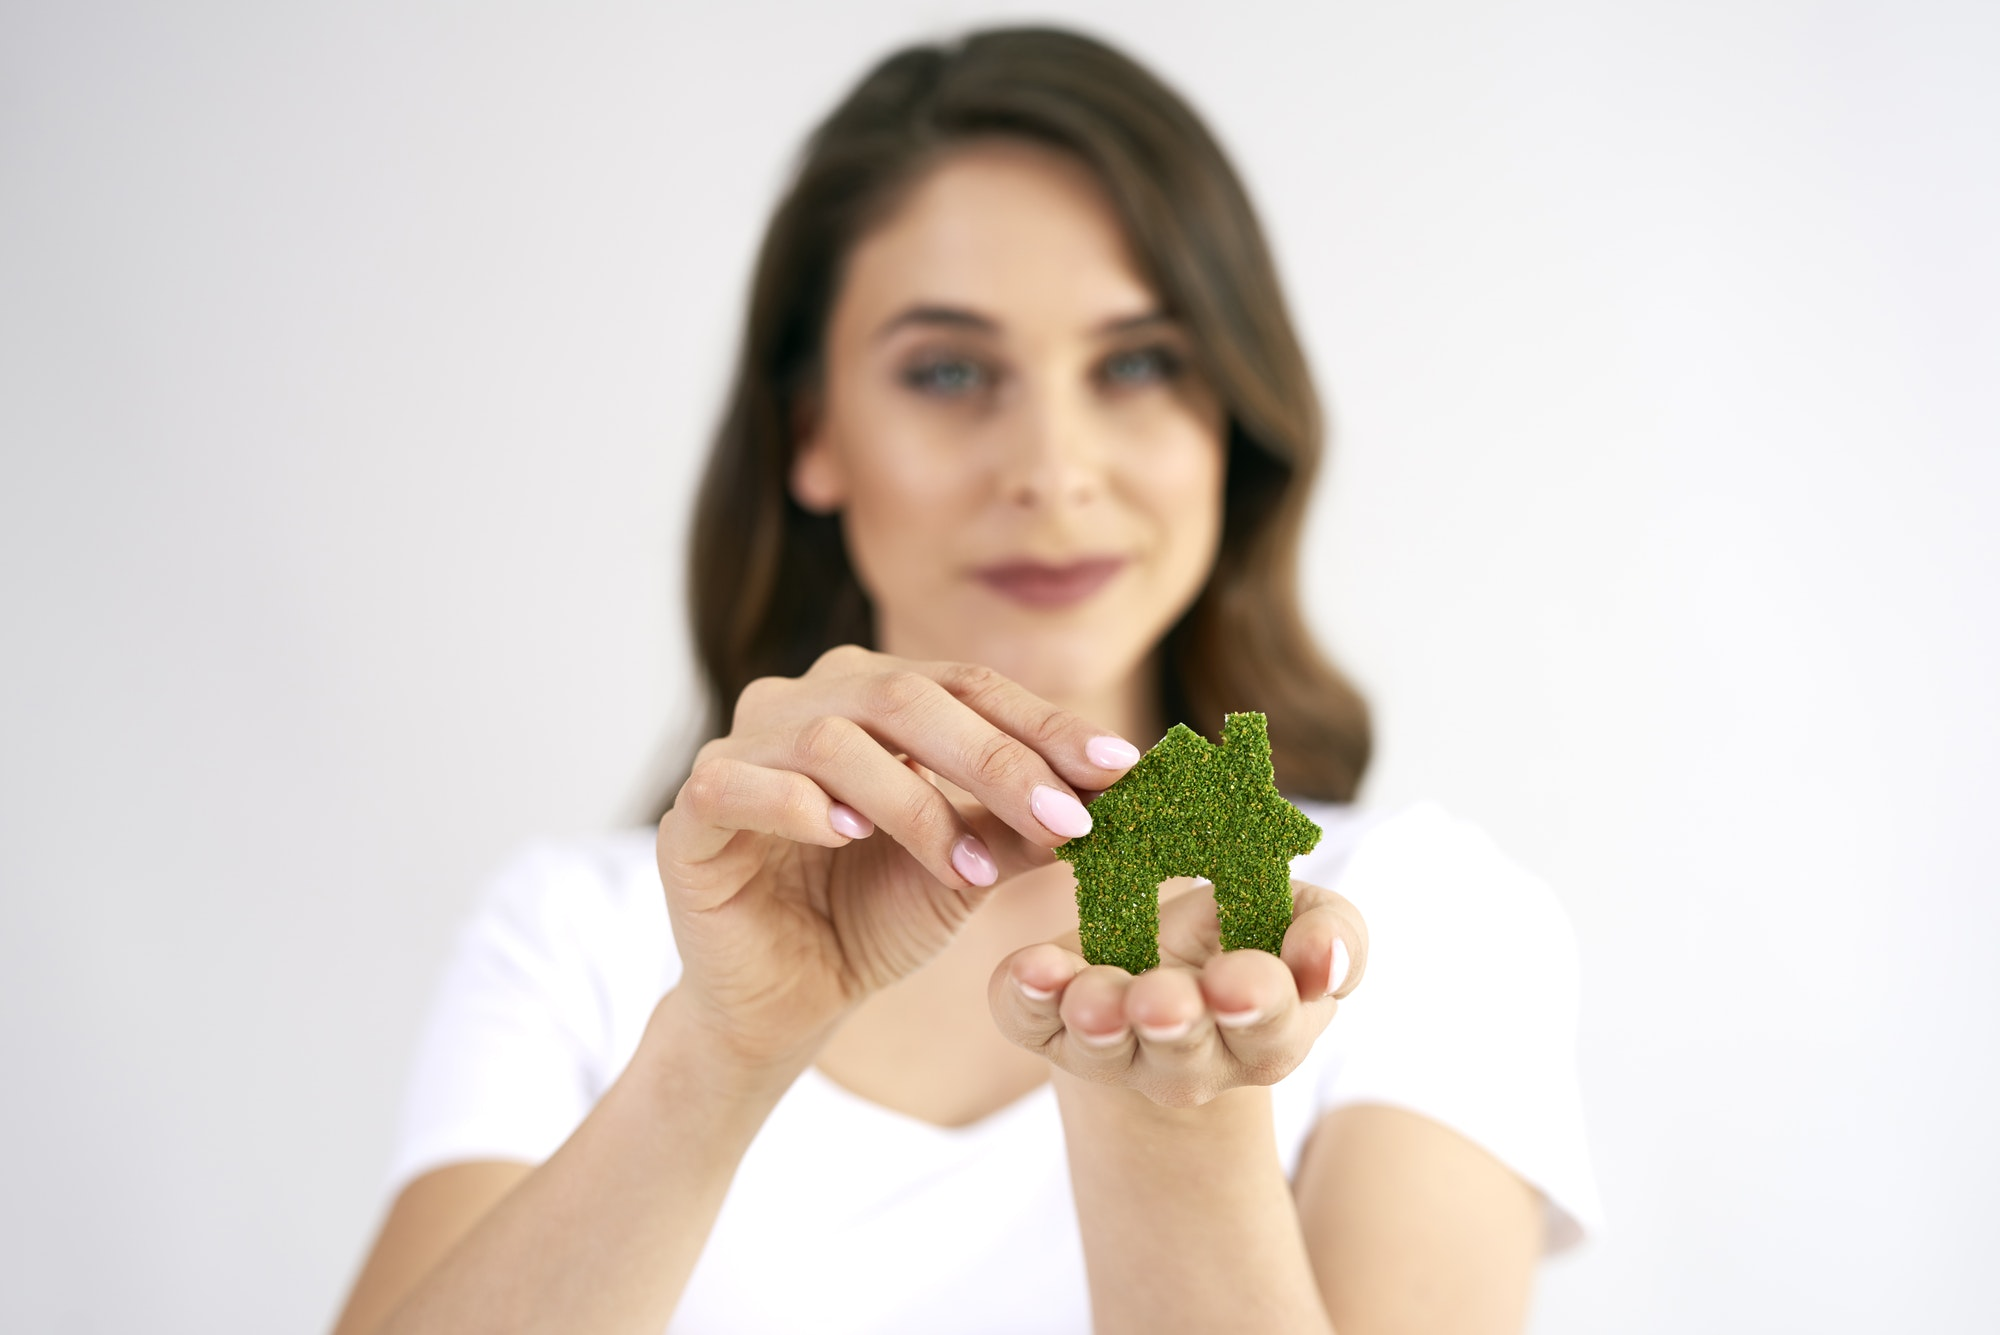 Woman's hand holding eco house icon